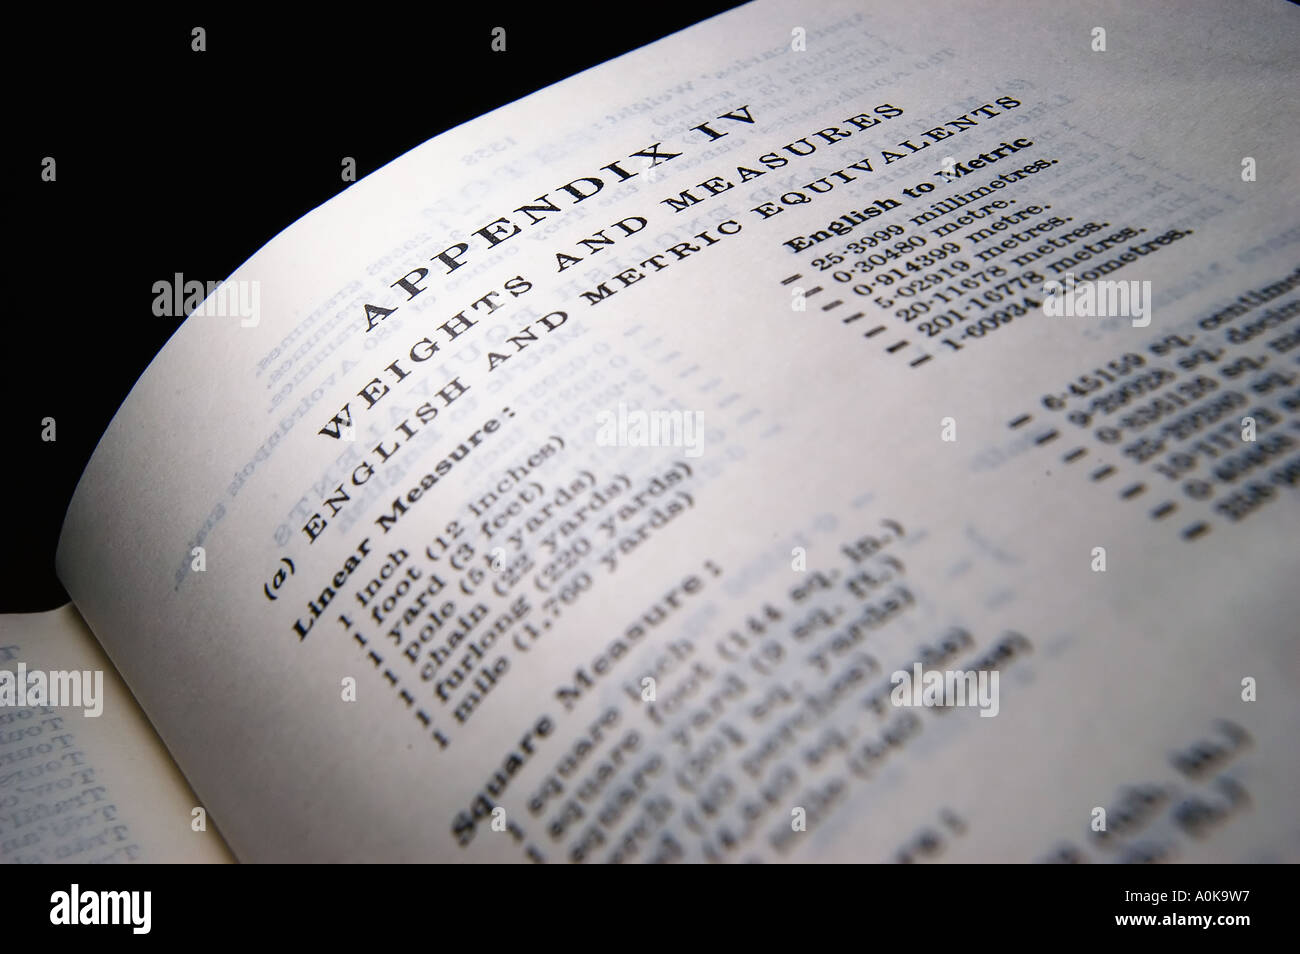 Conversion tables for Imperial and Metric measures in an Oxford dictionary - Stock Image